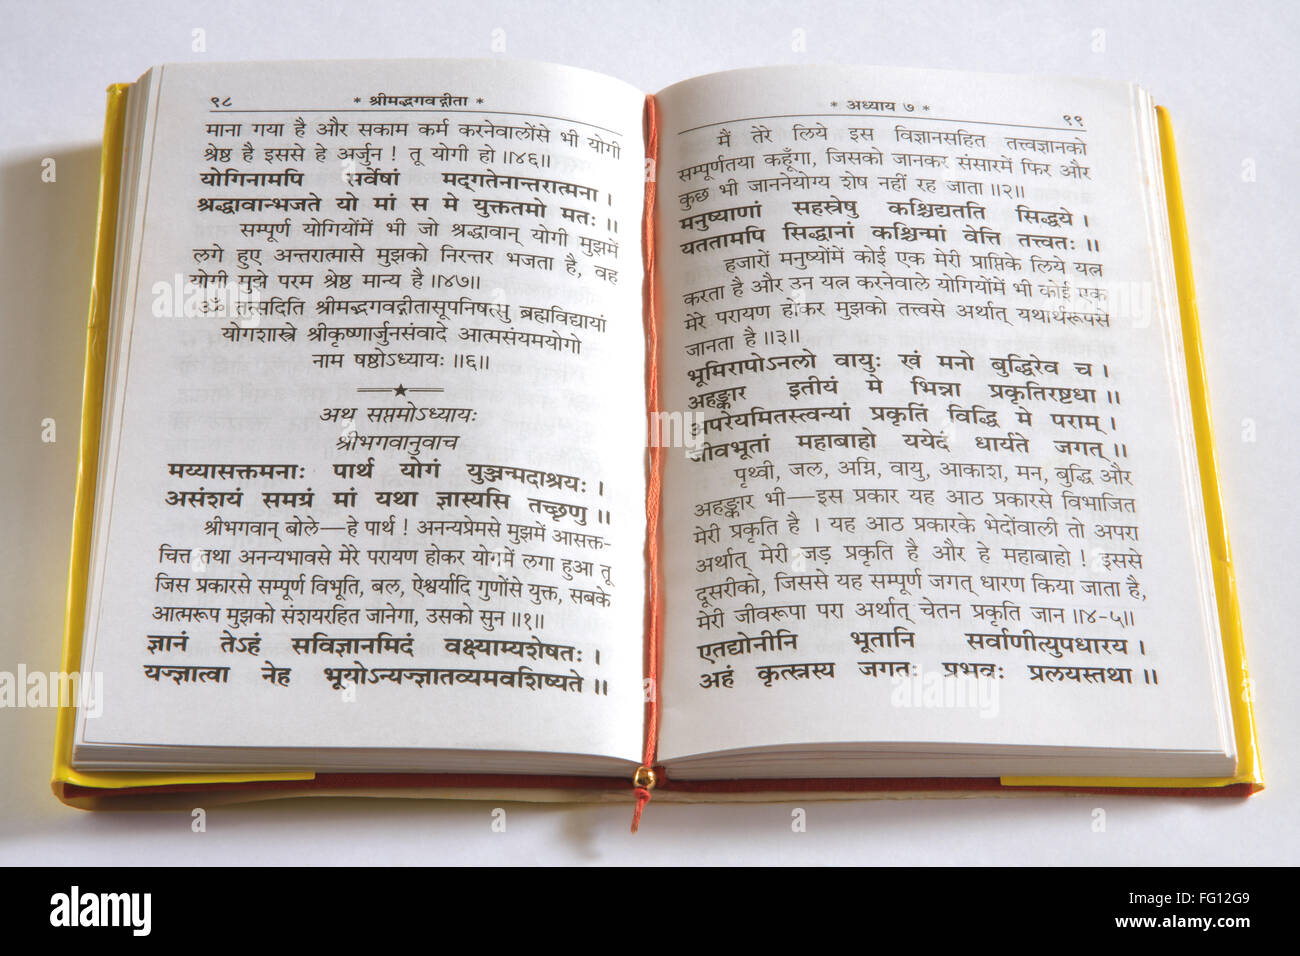 Concept , Shree Mudh Bhagvad gita theological book episode of Mahabharata on white background - Stock Image